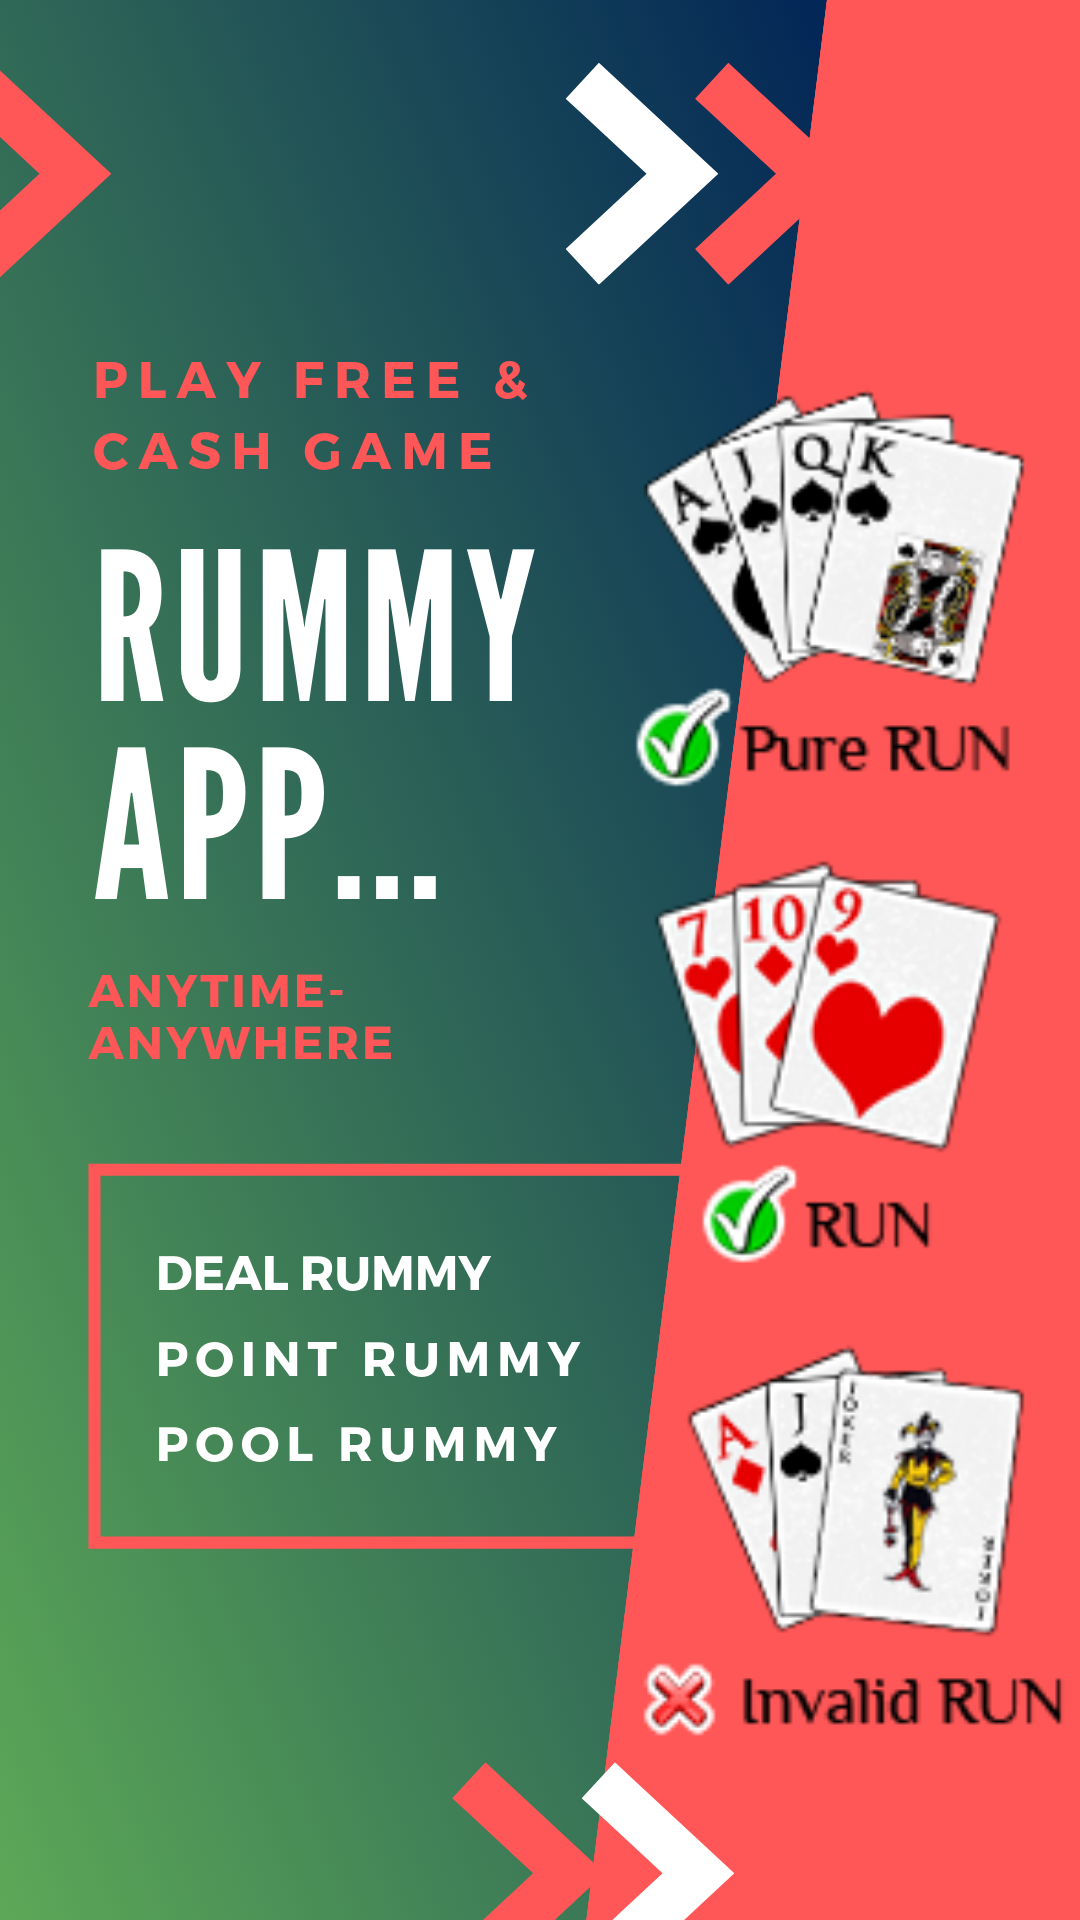 Easy to download rummy app, where you can play free or